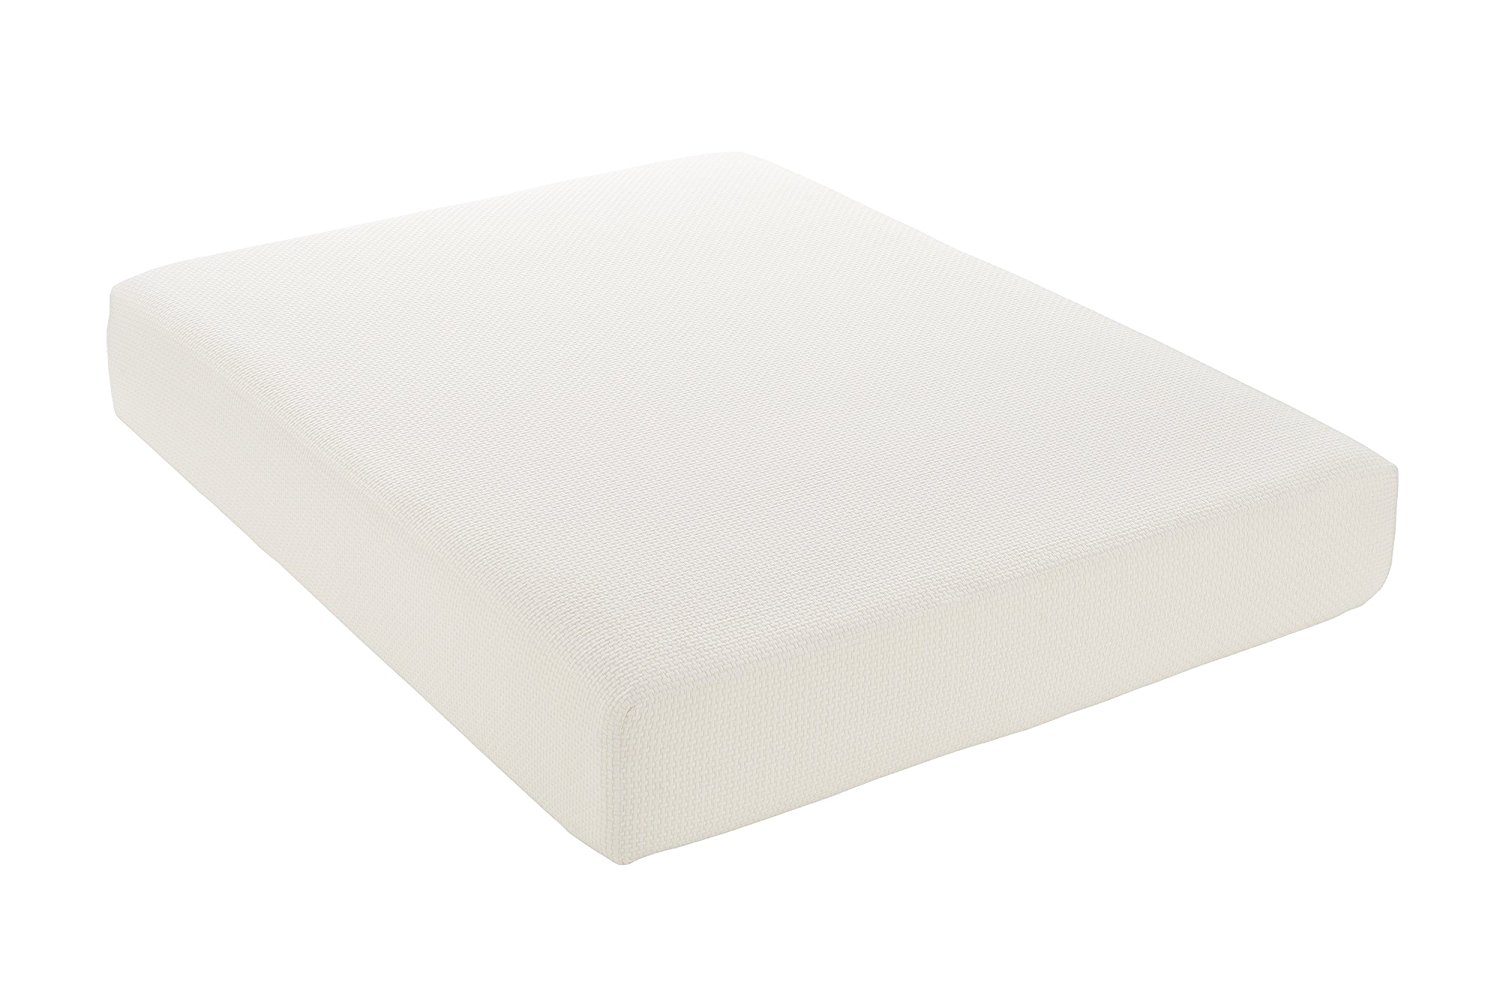 Signature luxury 8 inch memory foam mattress full size discount furniture warehouse Full size foam mattress